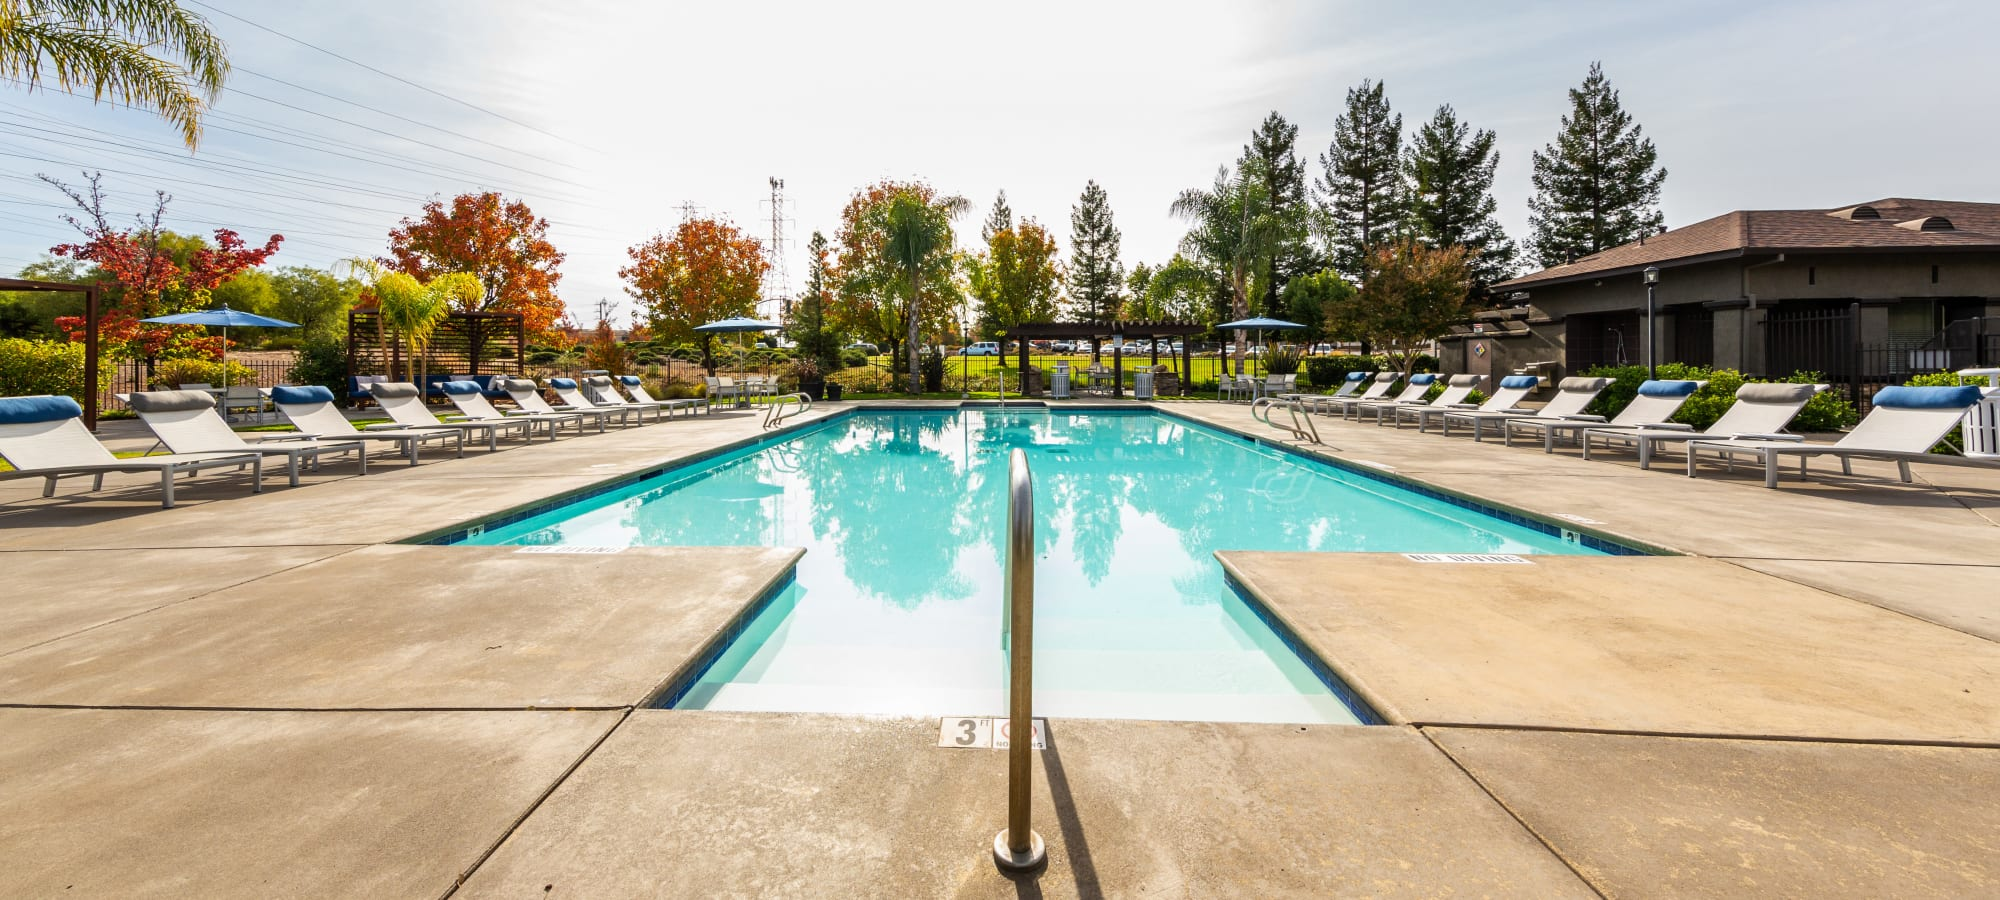 Apartments at The Fairmont at Willow Creek in Folsom, California